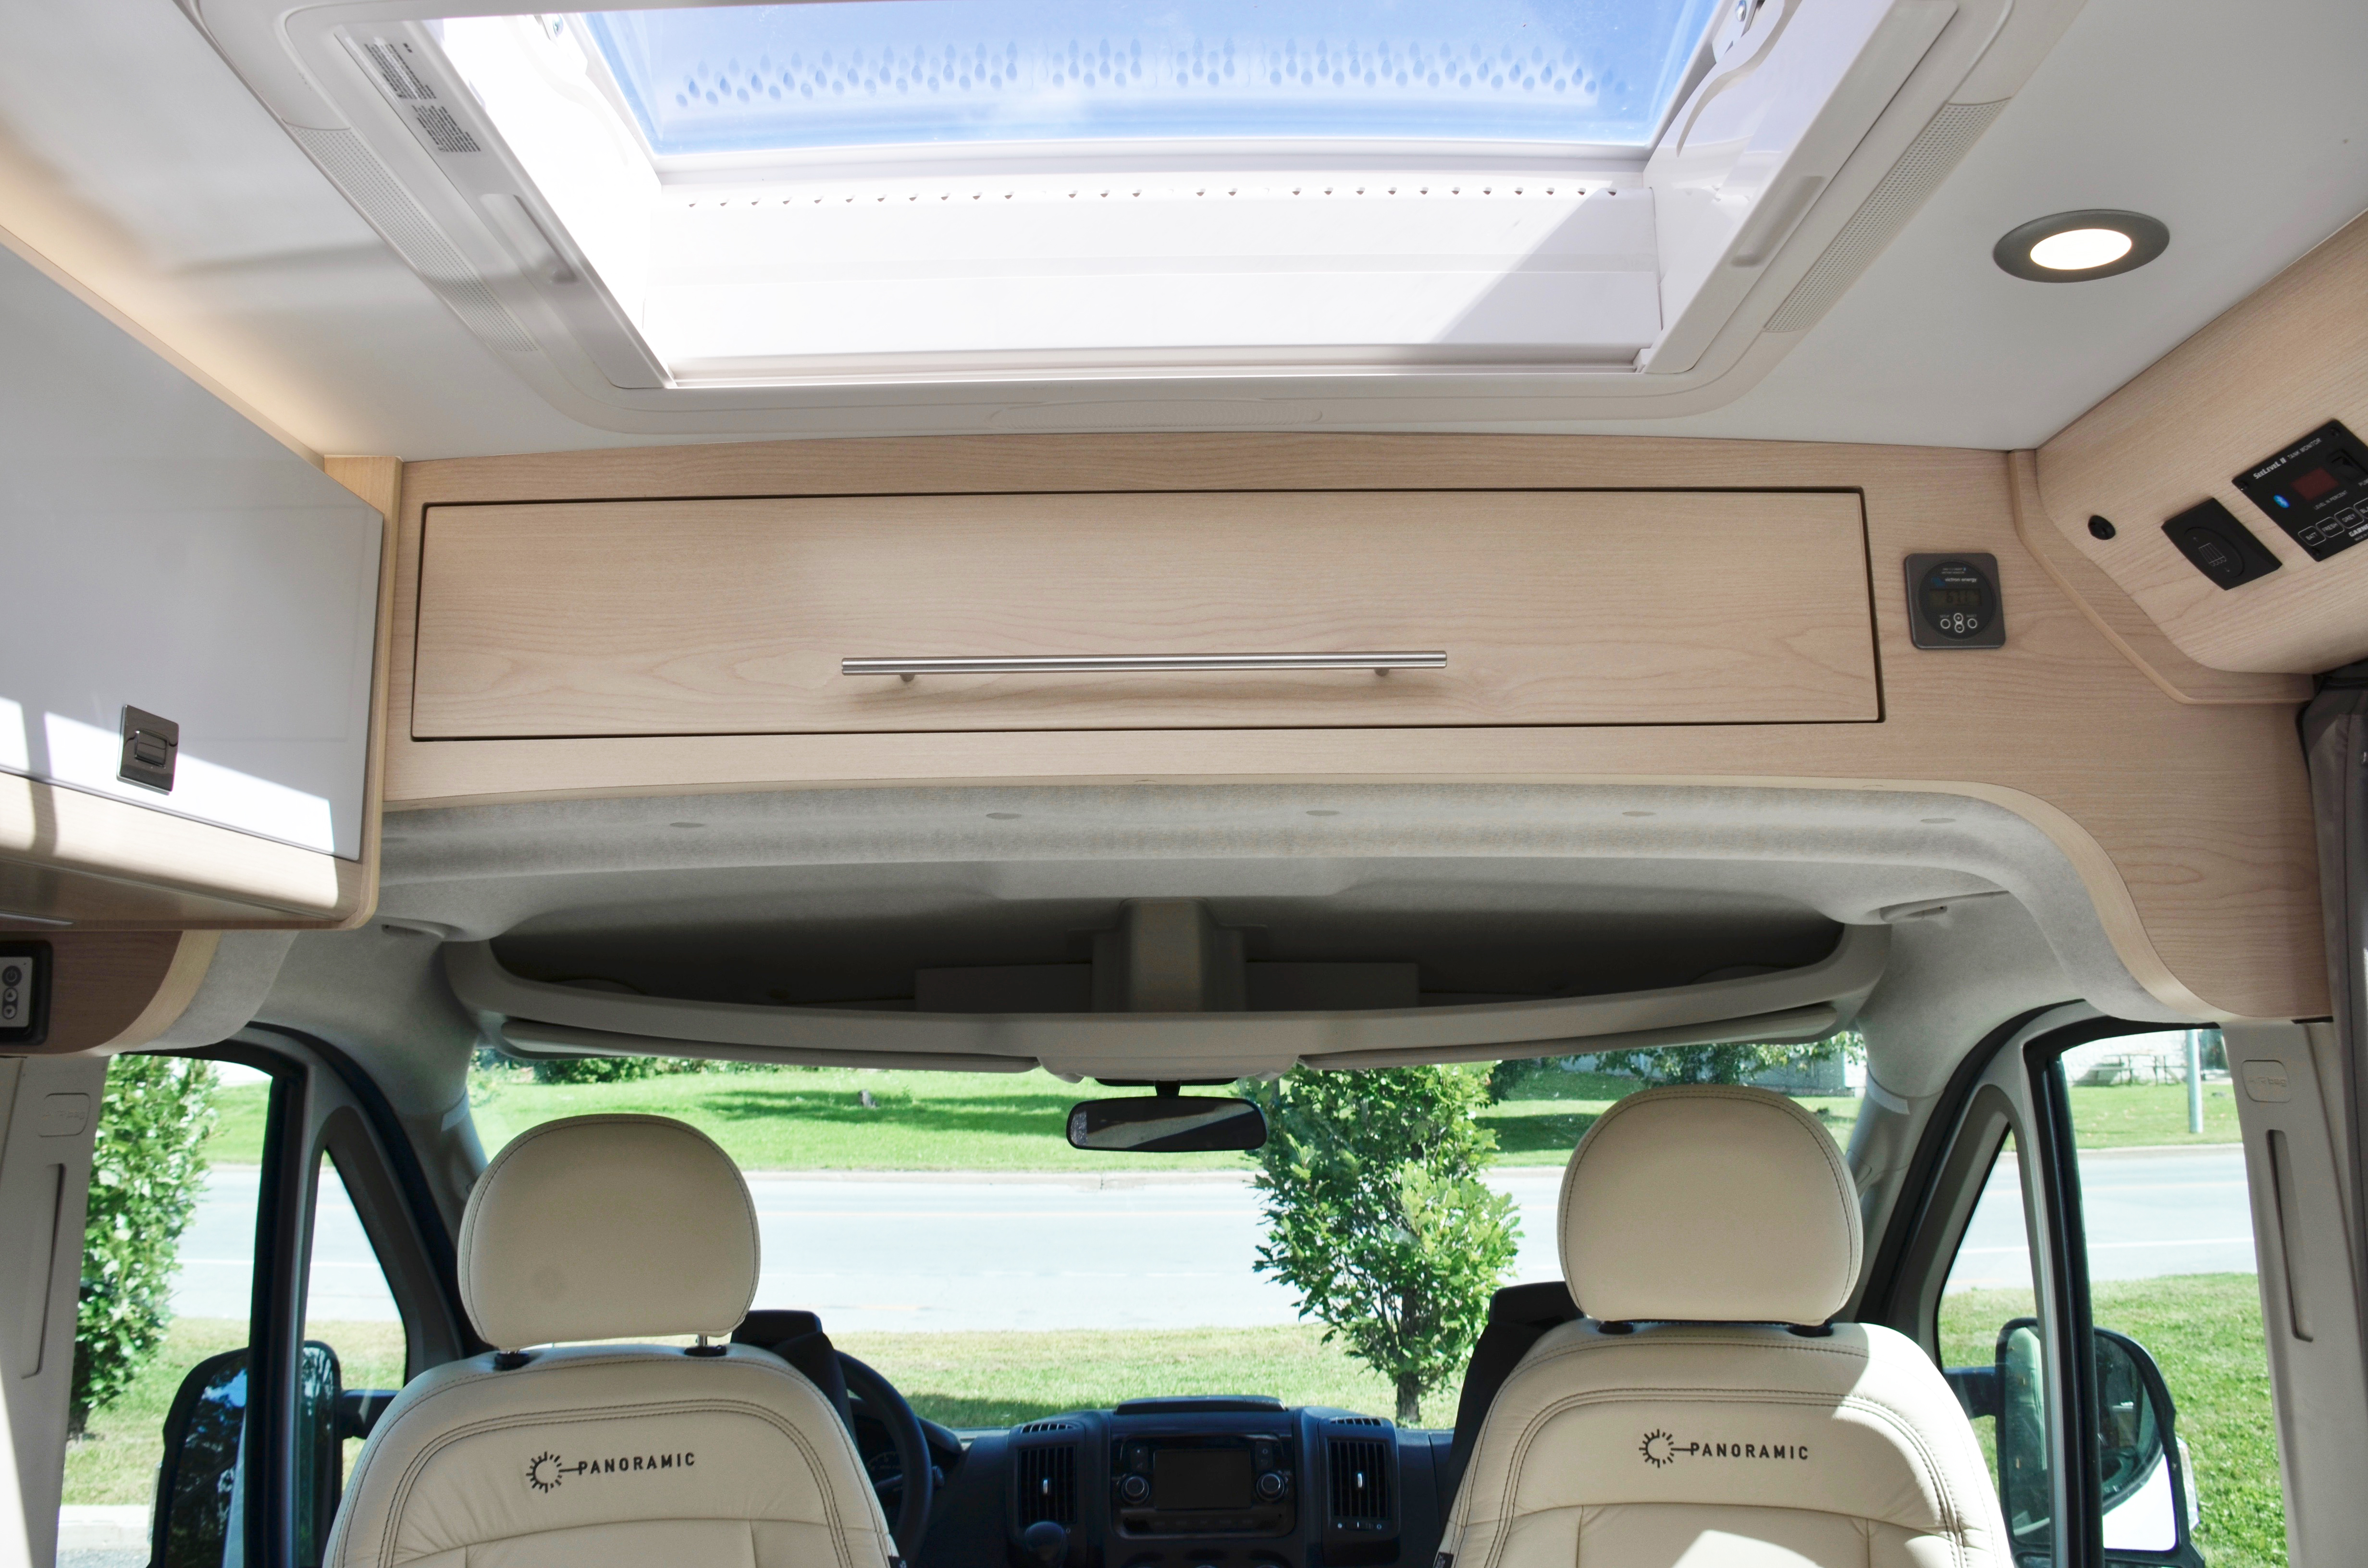 Panoramic RV - Front compartment - 1